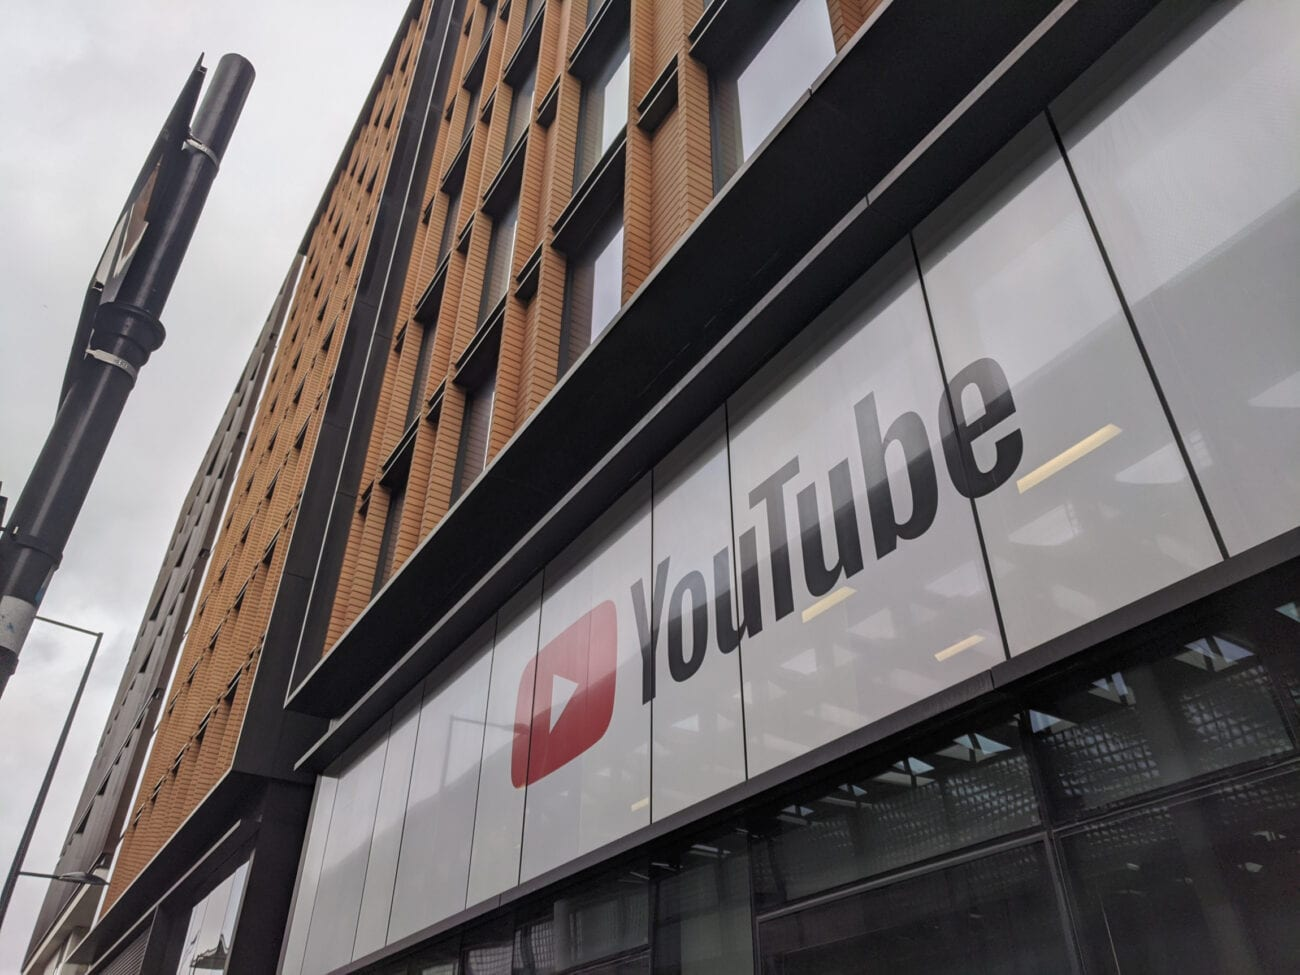 Remember being told that watching videos is a waste of time? Tell that to the highest paid YouTubers! Come see who they are and start your own channel.